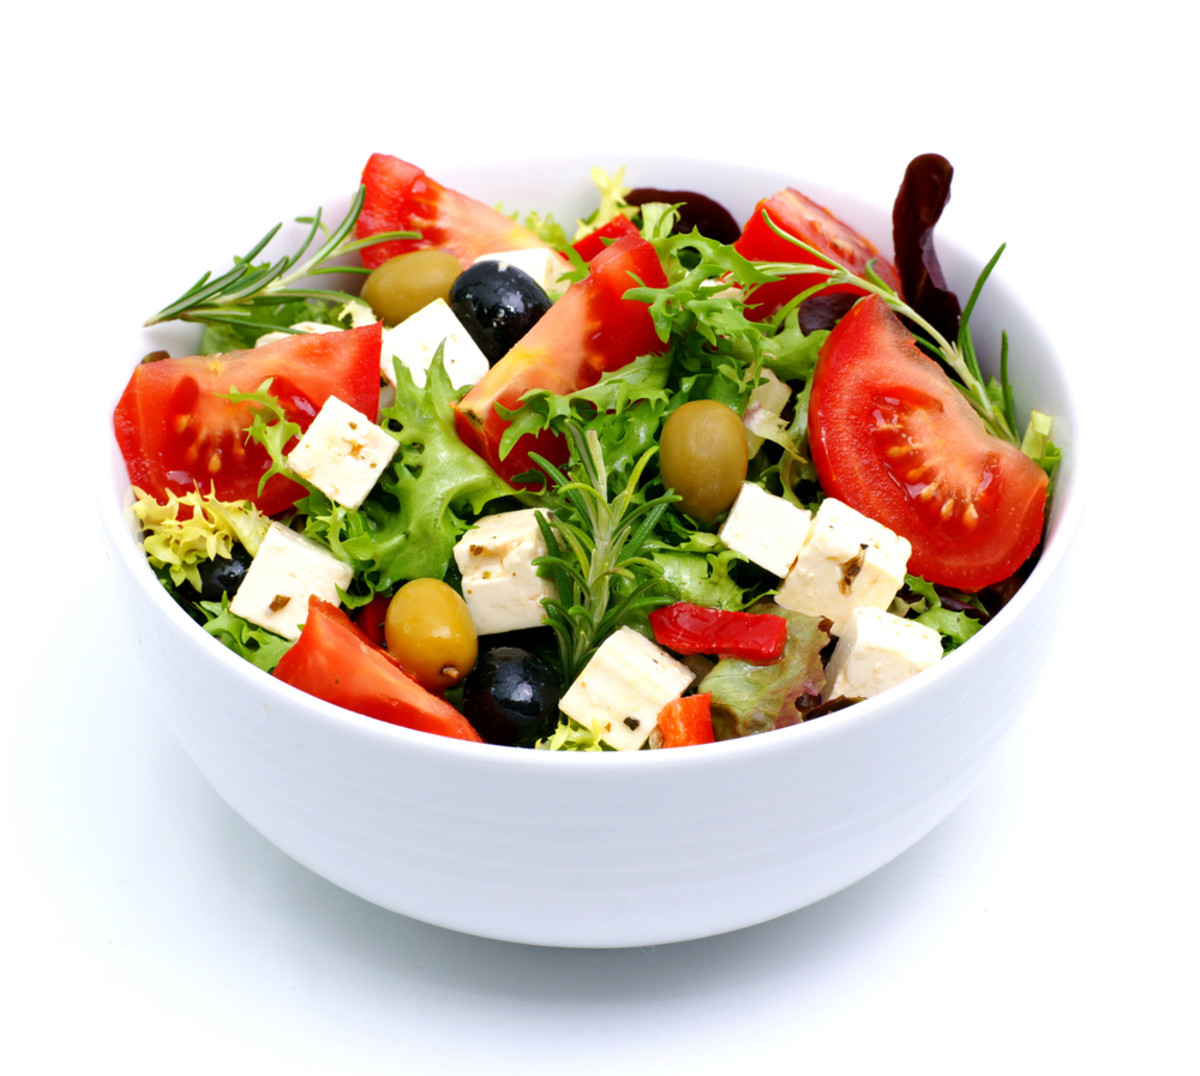 A feta cheese salad served in airlines